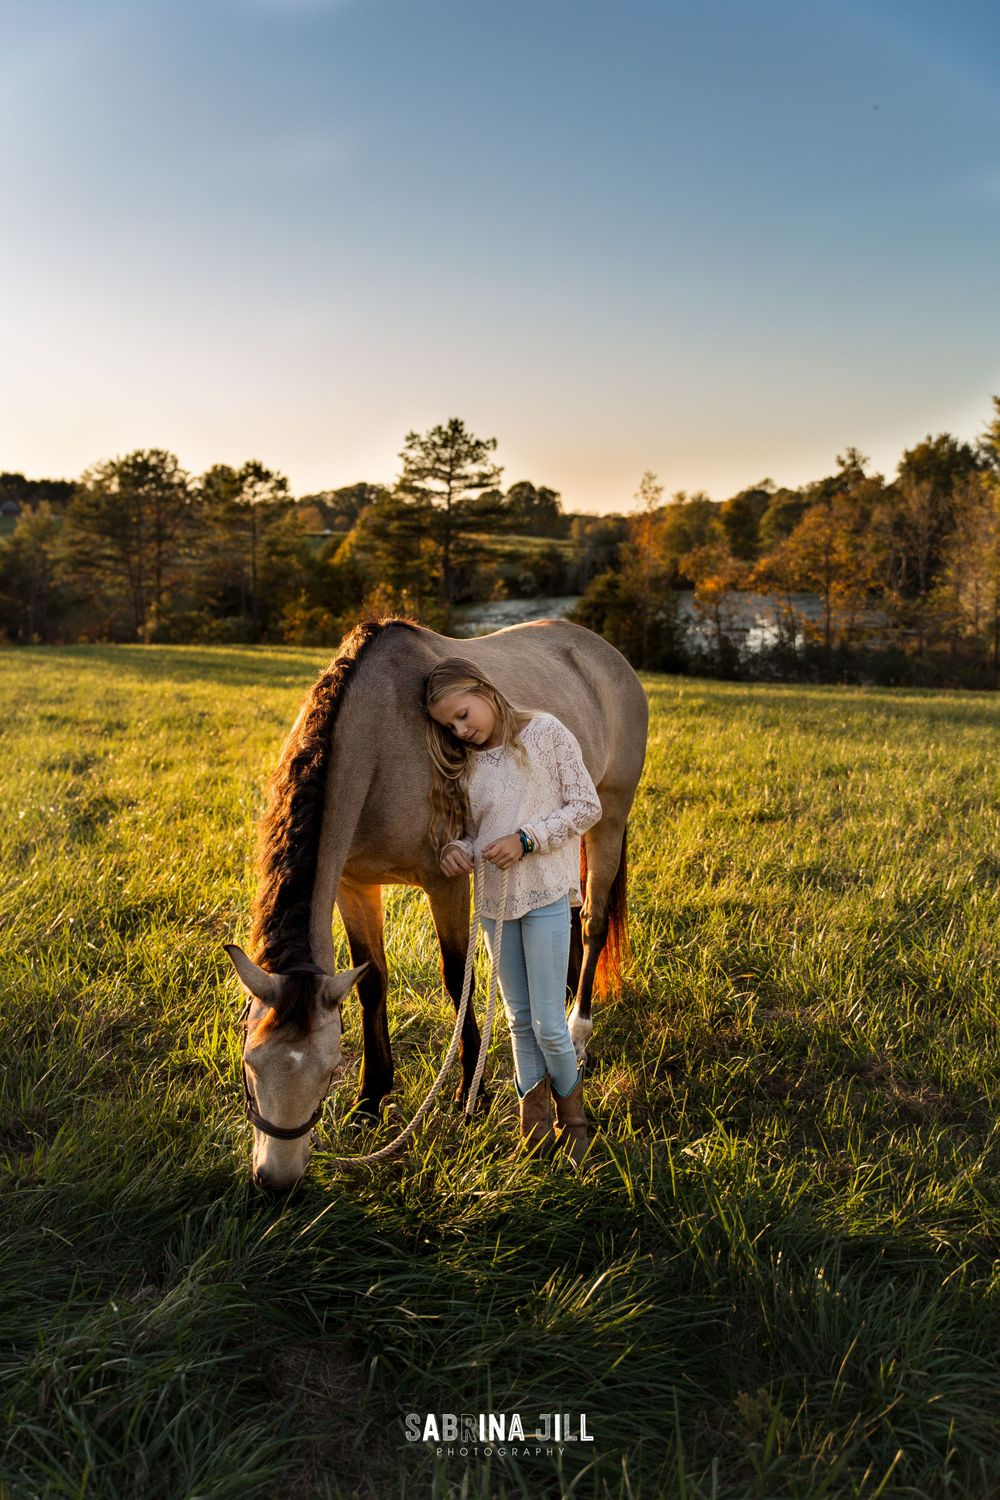 Girl leaning on her horse in a Waxhaw, NC field